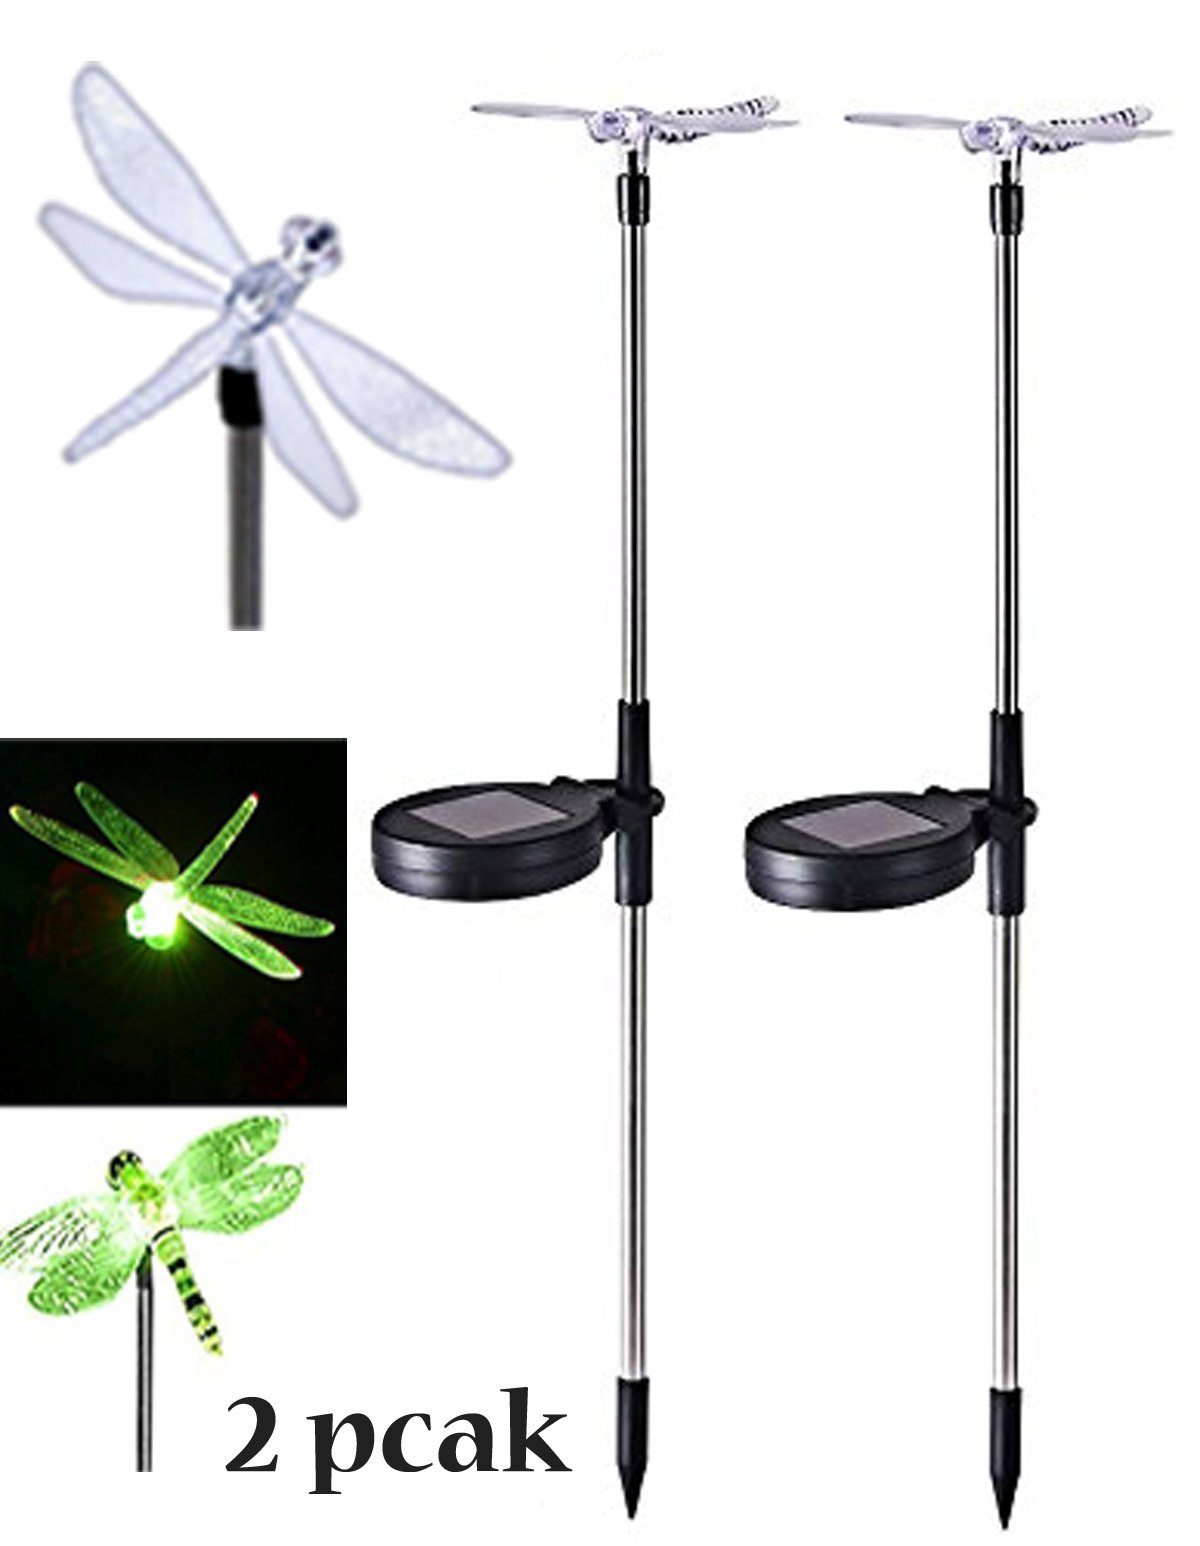 2 Pack~Solar Stake Light~Outdoor Garden Front-door Lawn Path light, In-ground Lights~Dragonfly Multi-color Changing LED Light~ We Pay Your Sales Tax LS02019